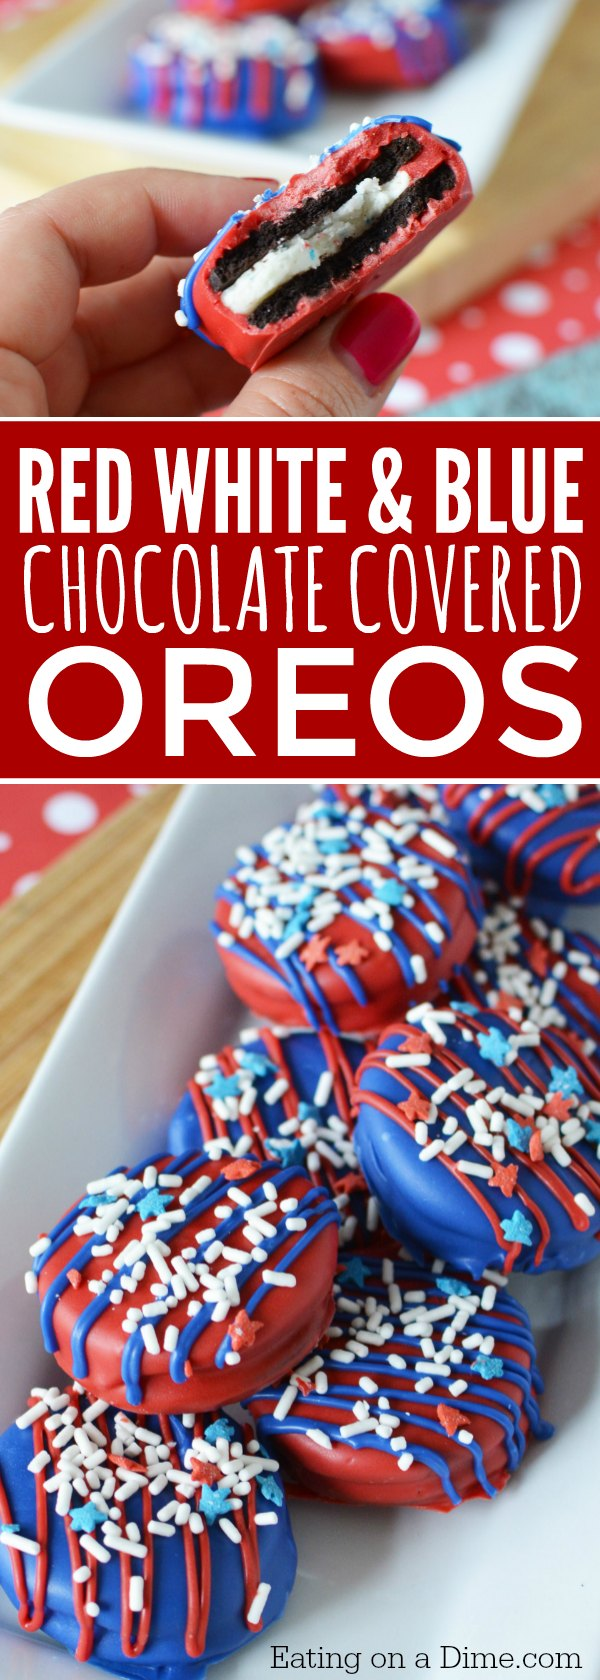 These 4th of July Chocolate Covered Oreos are delicious and so easy to make. It is one of our favorite easy 4th of July Desserts! Make these Red white and blue chocolate covered oreos today! It will be one of your favorite Quick and easy Fourth of July Desserts!